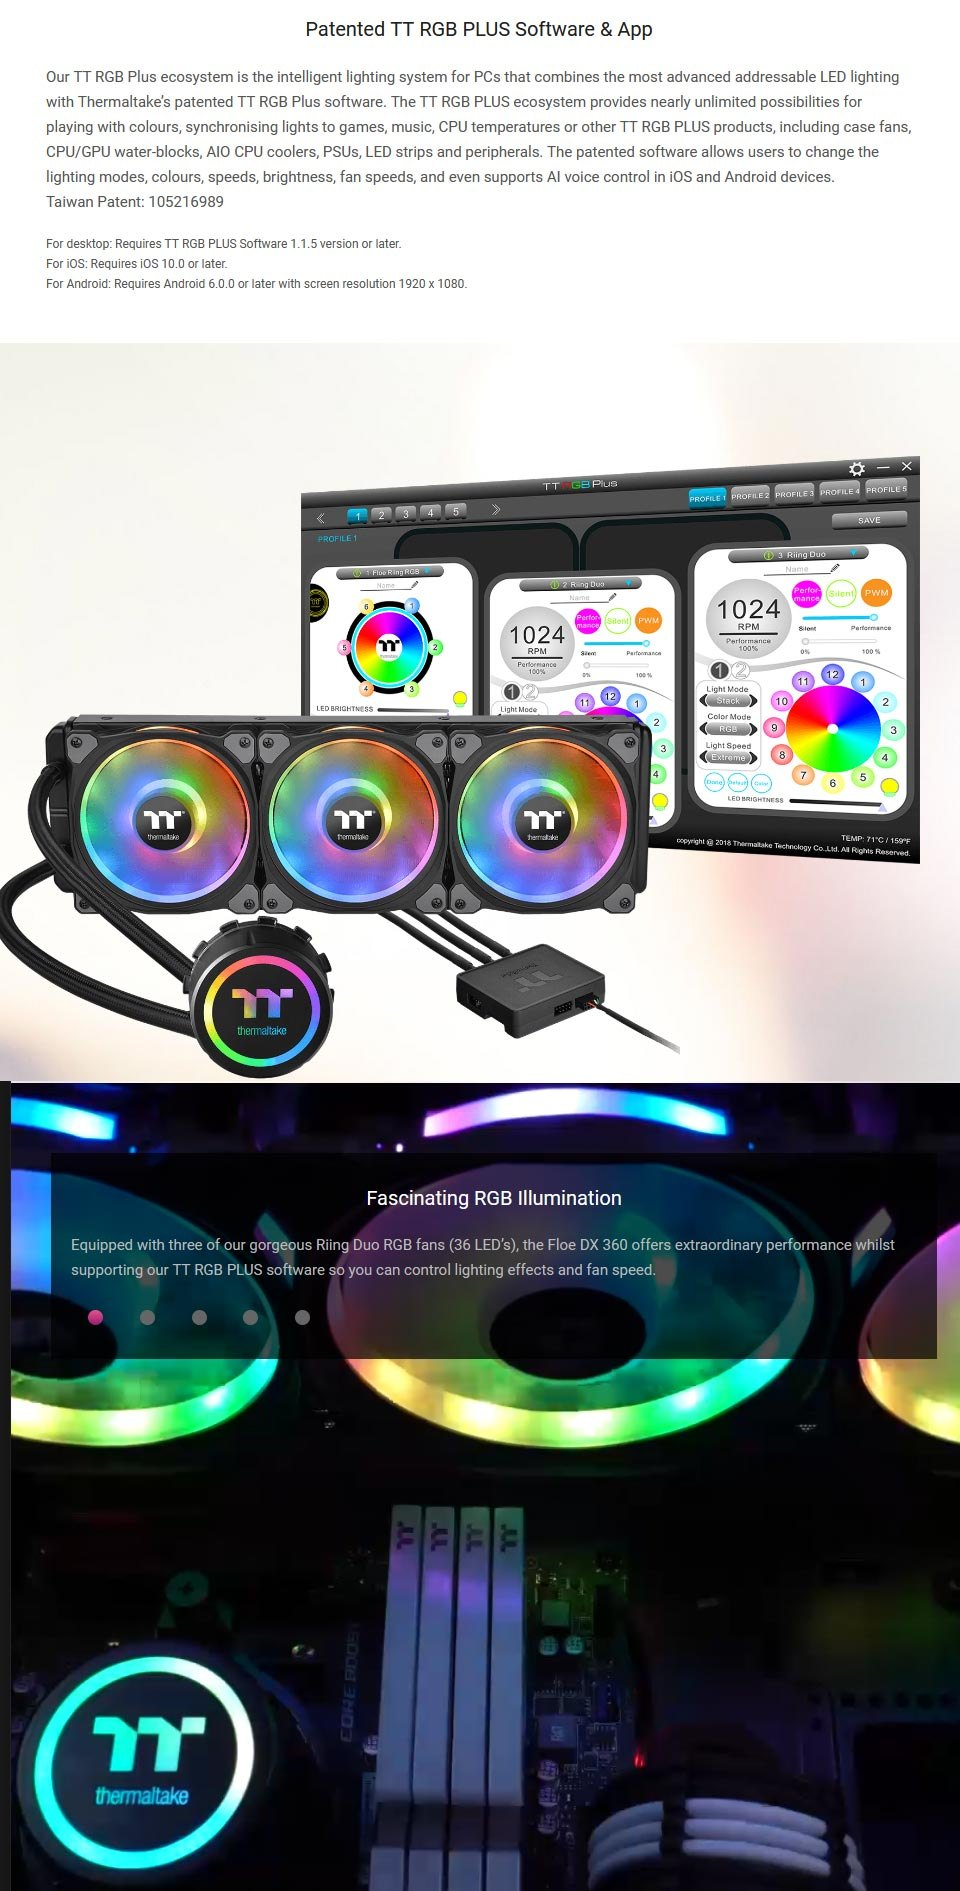 Thermaltake Floe DX RGB 360mm AIO Liquid CPU Cooler features 2